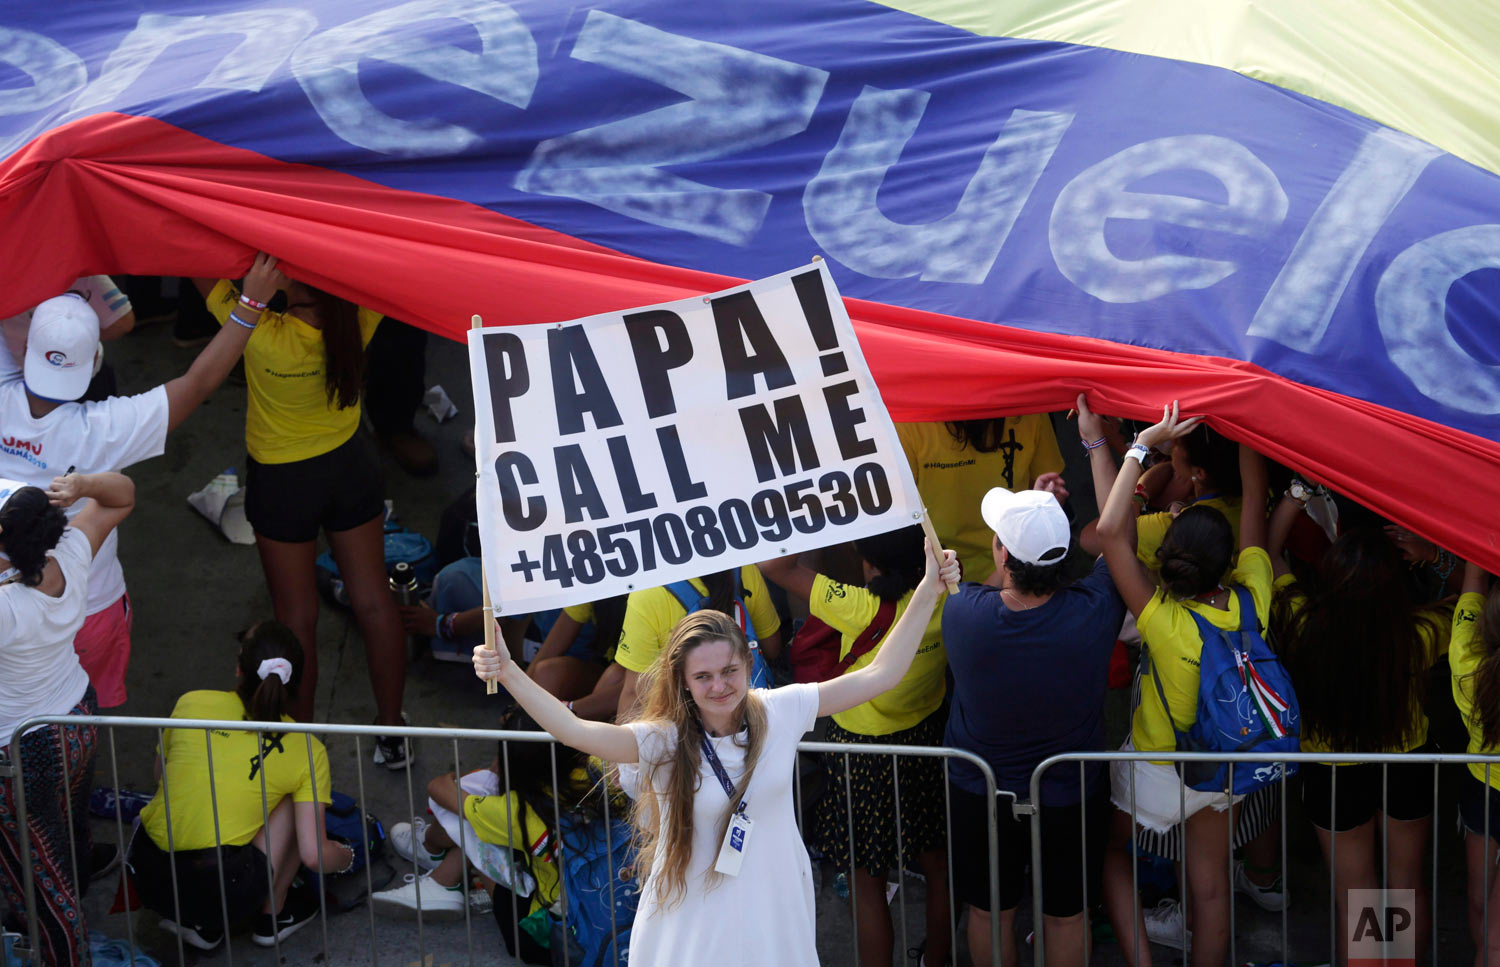 A young woman holds a sign asking Pope Francis to call her as she waits for him to arrive for an outdoor Mass in Panama City, Jan. 24, 2019. (AP Photo/Arnulfo Franco)